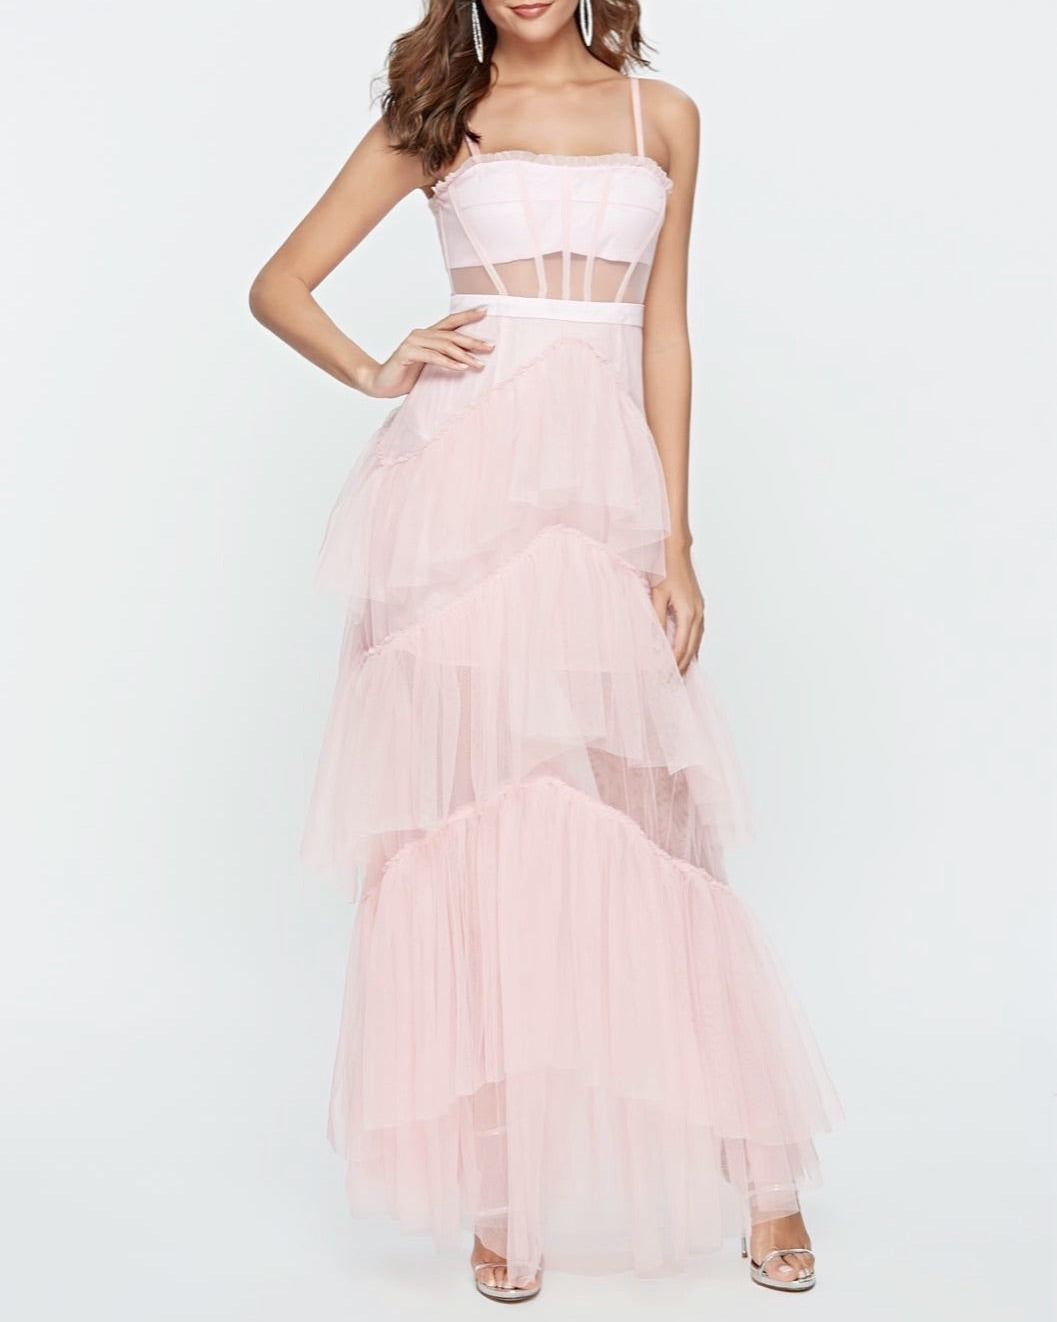 Jane Tulle Pink Layered Dress